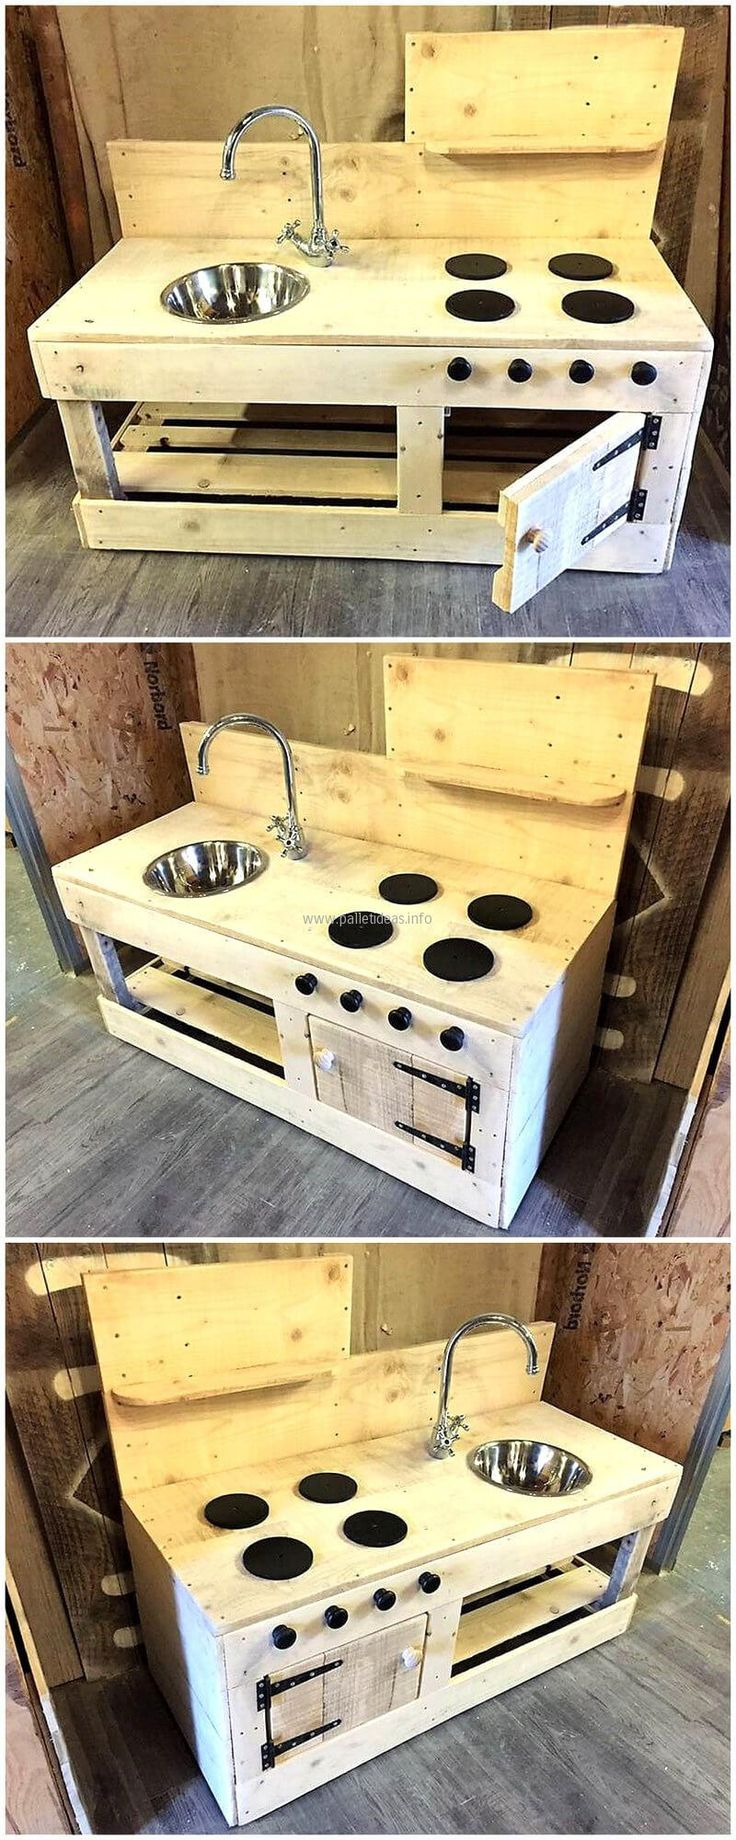 Wooden transport pallets have become increasingly popular for diy - Brighten Recycling Ideas For Shipping Wood Pallets